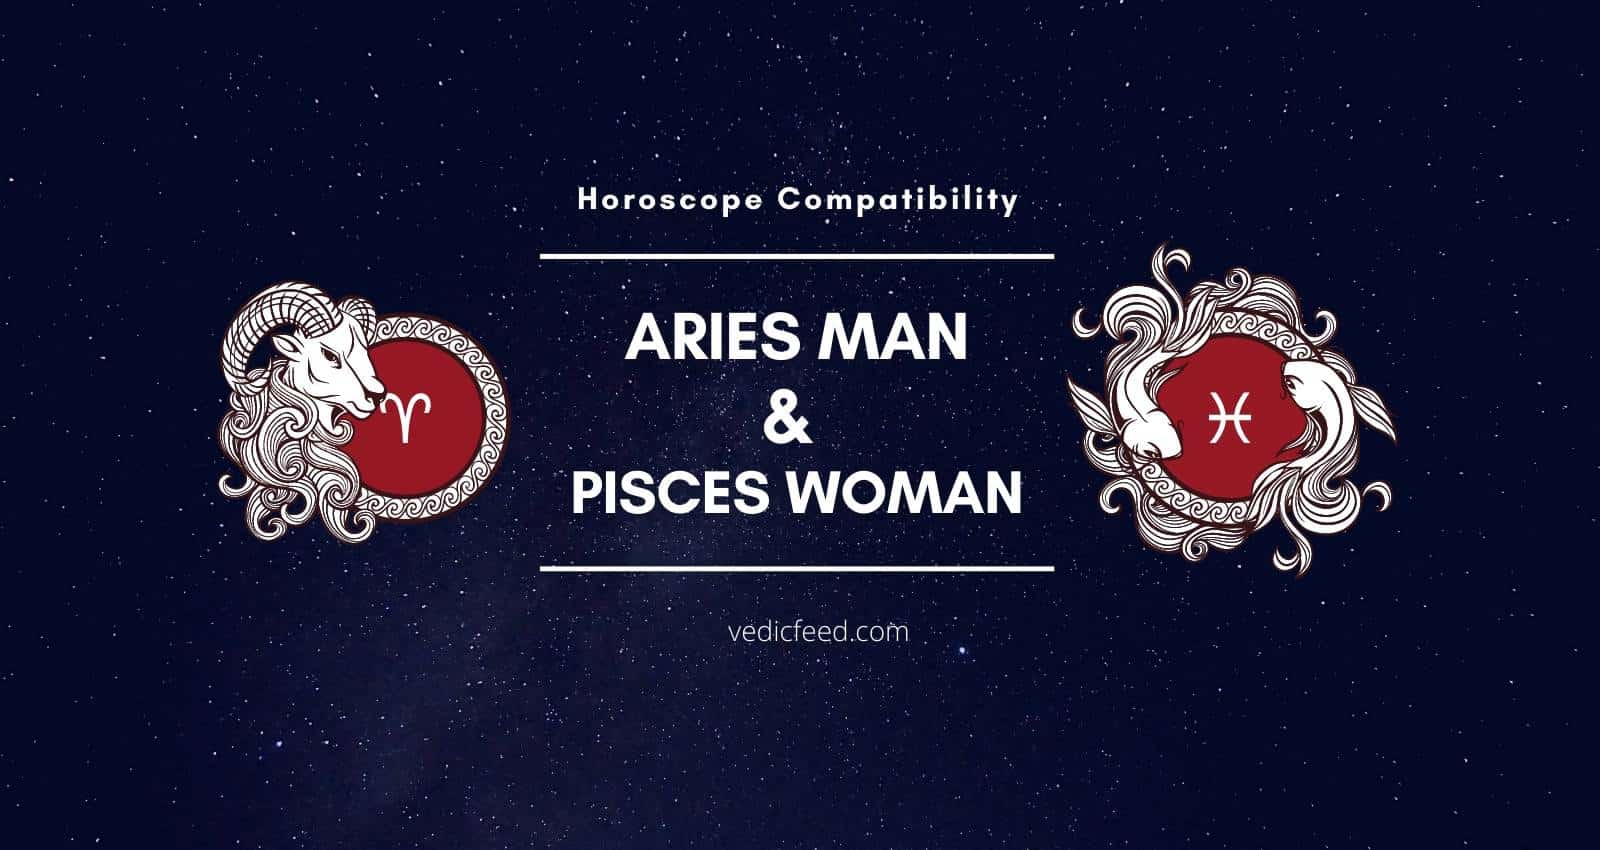 Aries Man and Pisces Woman